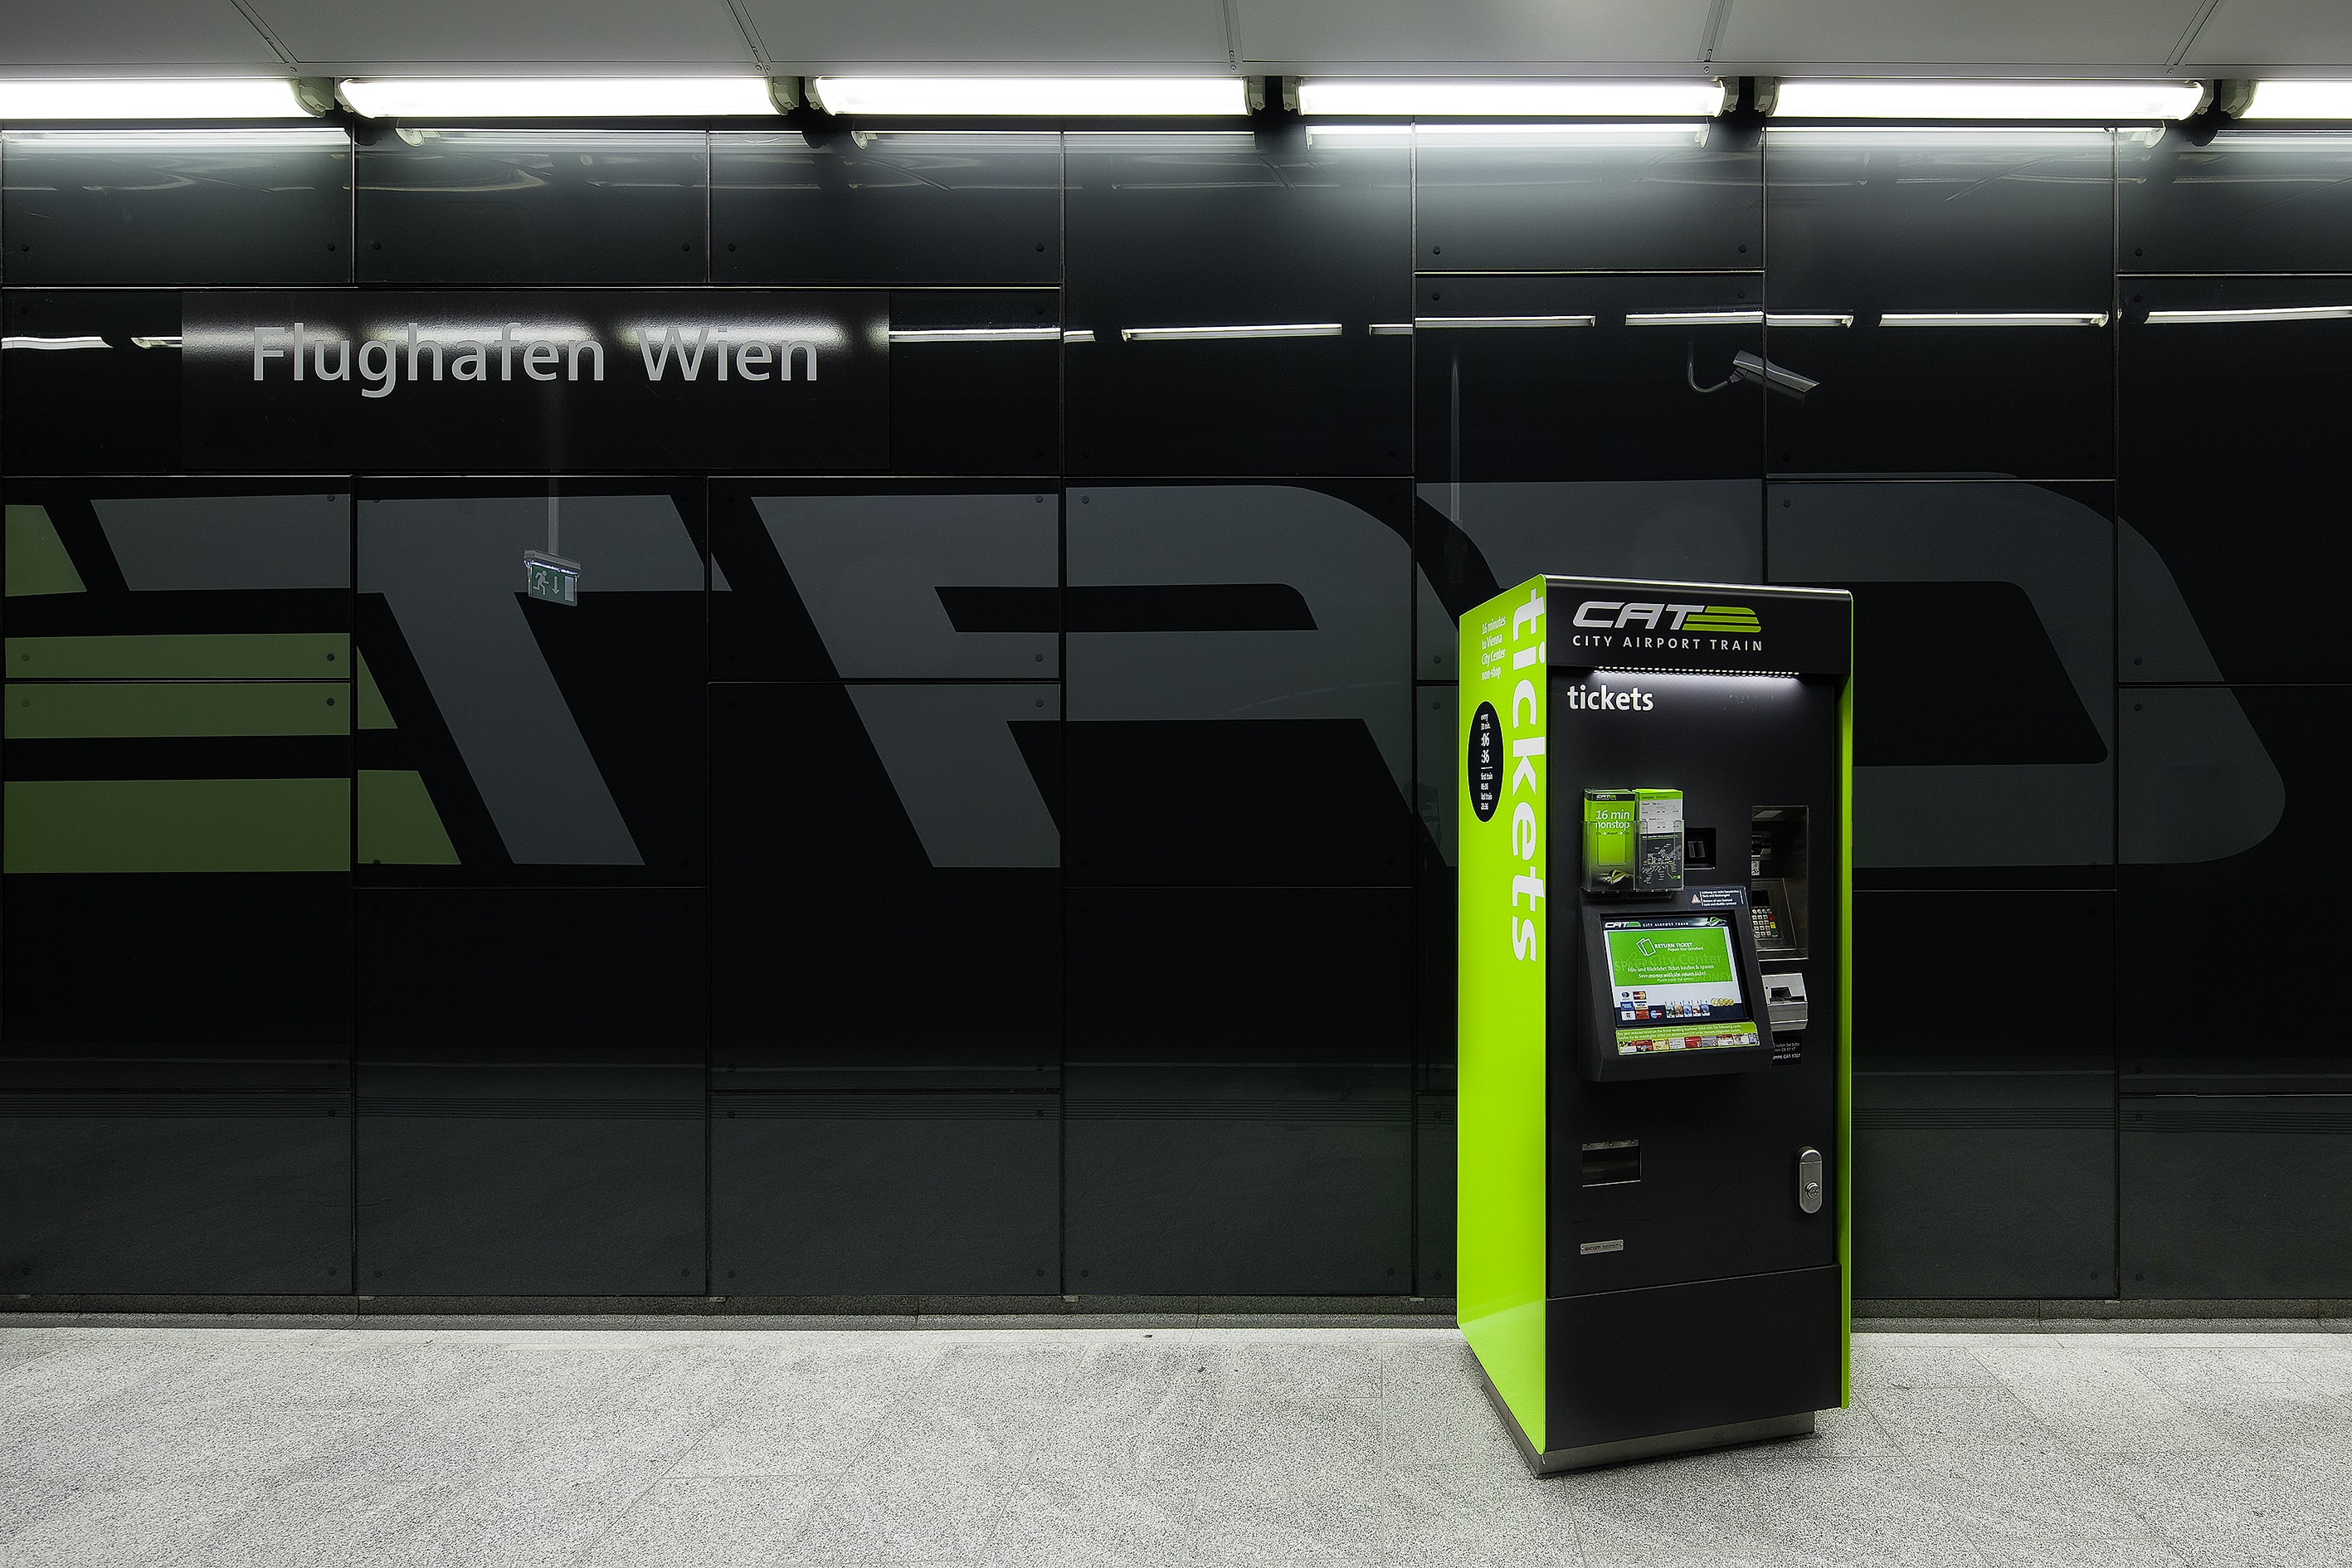 Ticketautomat für den City Airport Train (CAT)